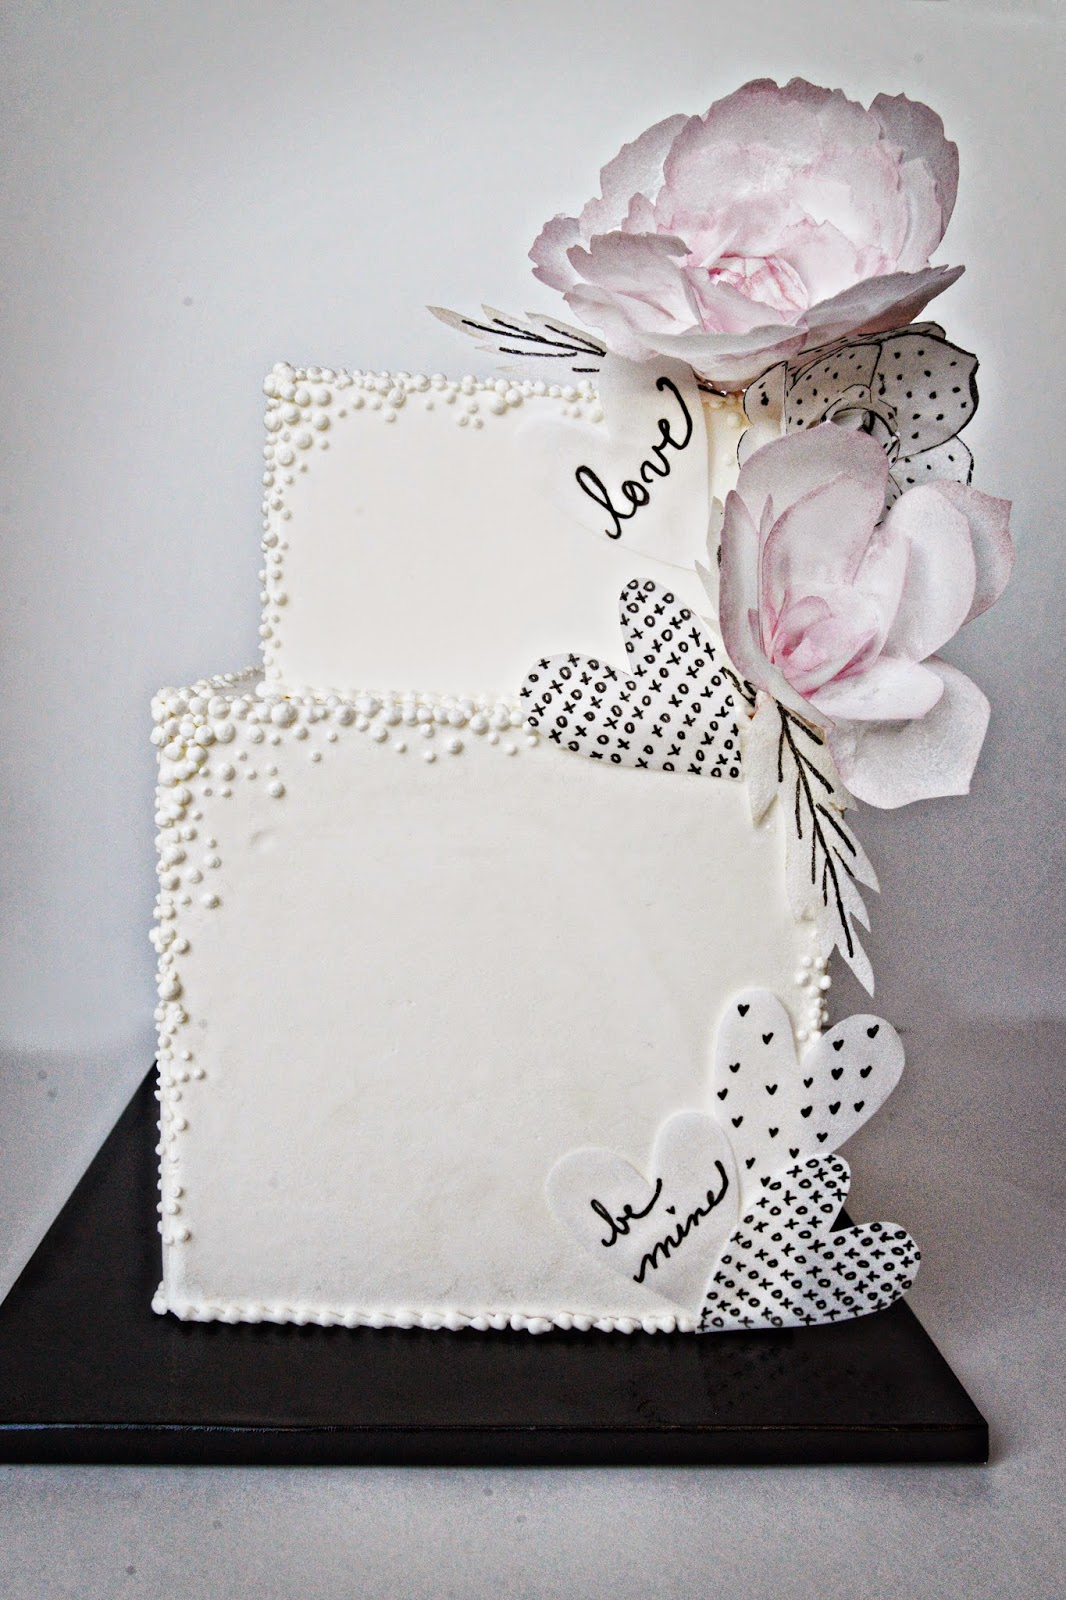 Cake Happens Wafer Paper Flowersd Love Notes